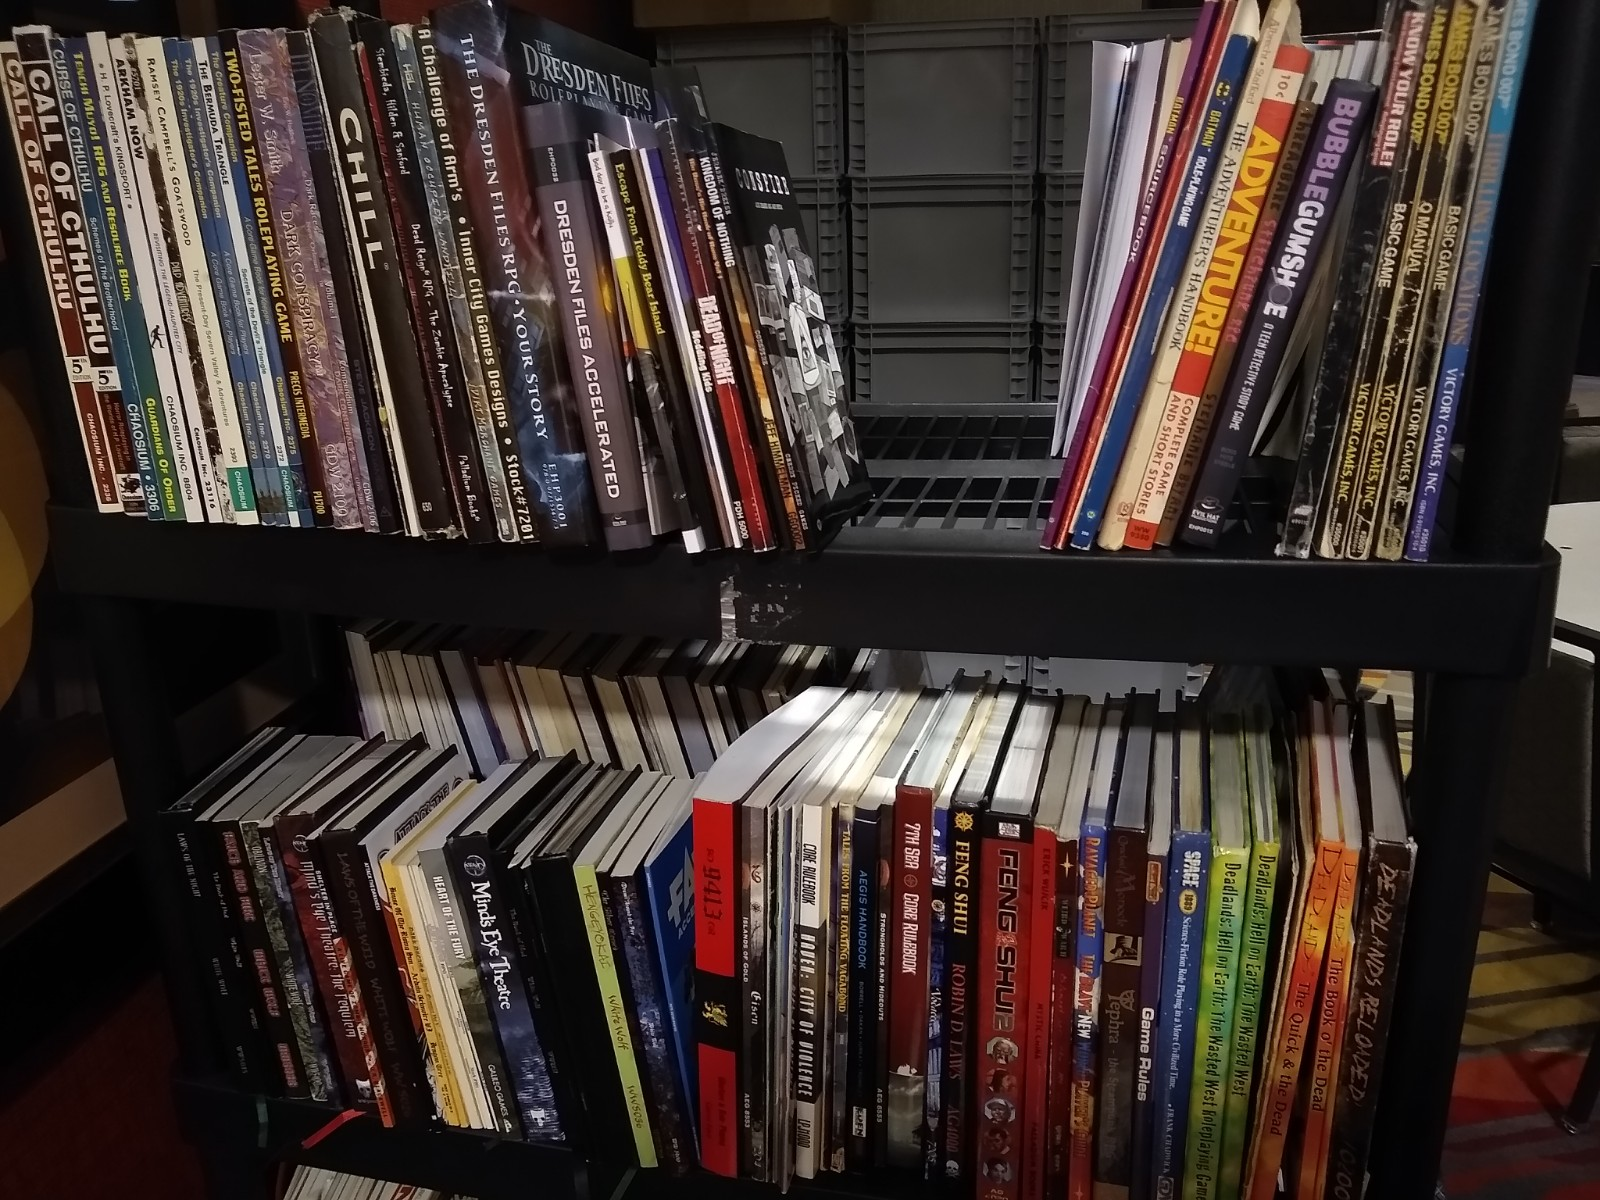 One of the bookshelves with books. Feng Shui anyone? Maybe Call of Cthulu?